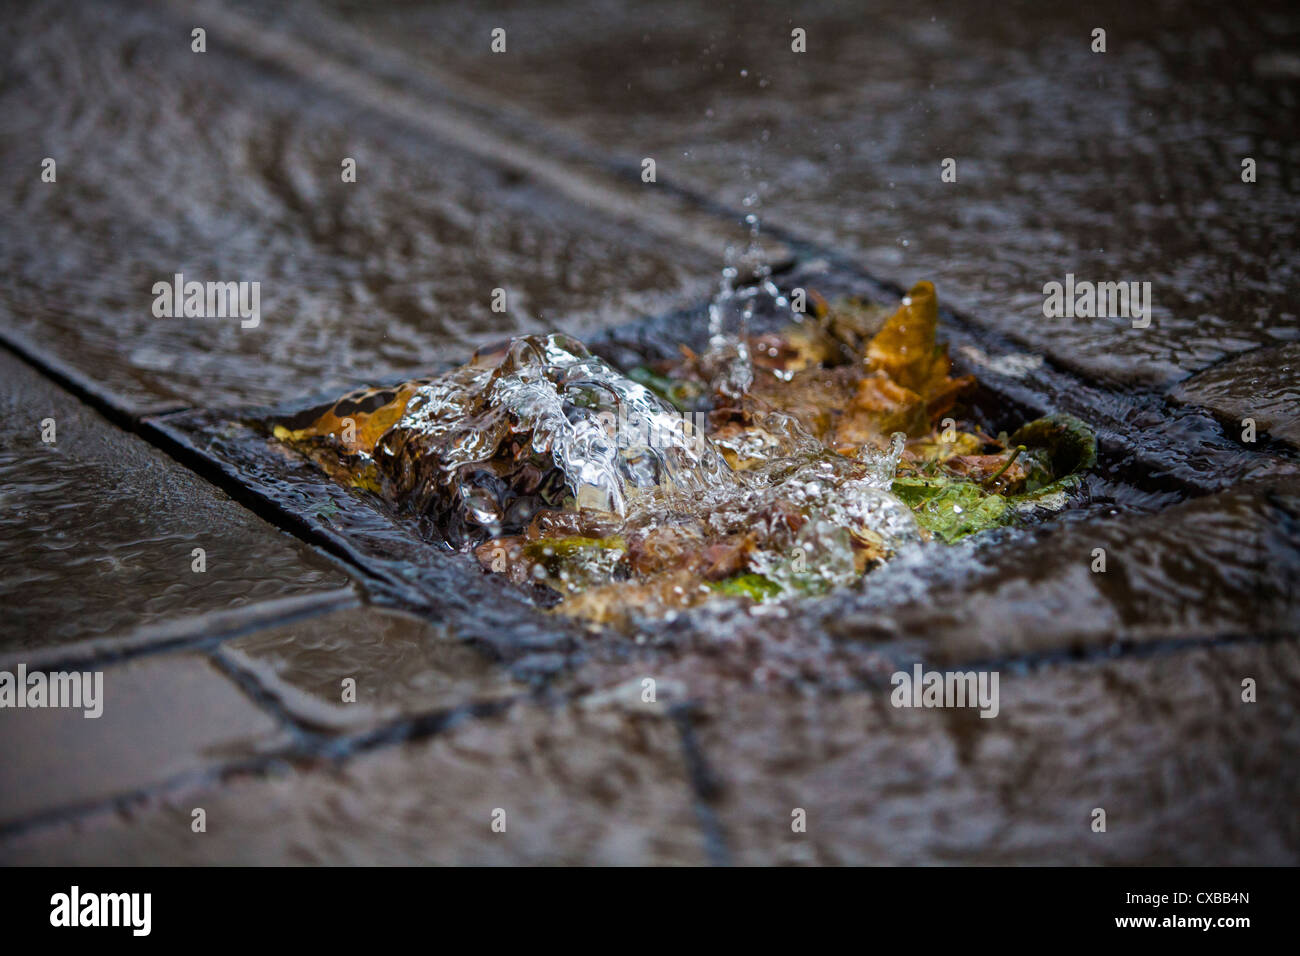 Rain water flowing in to a grate blocked with leaves in Birmingham, UK. - Stock Image